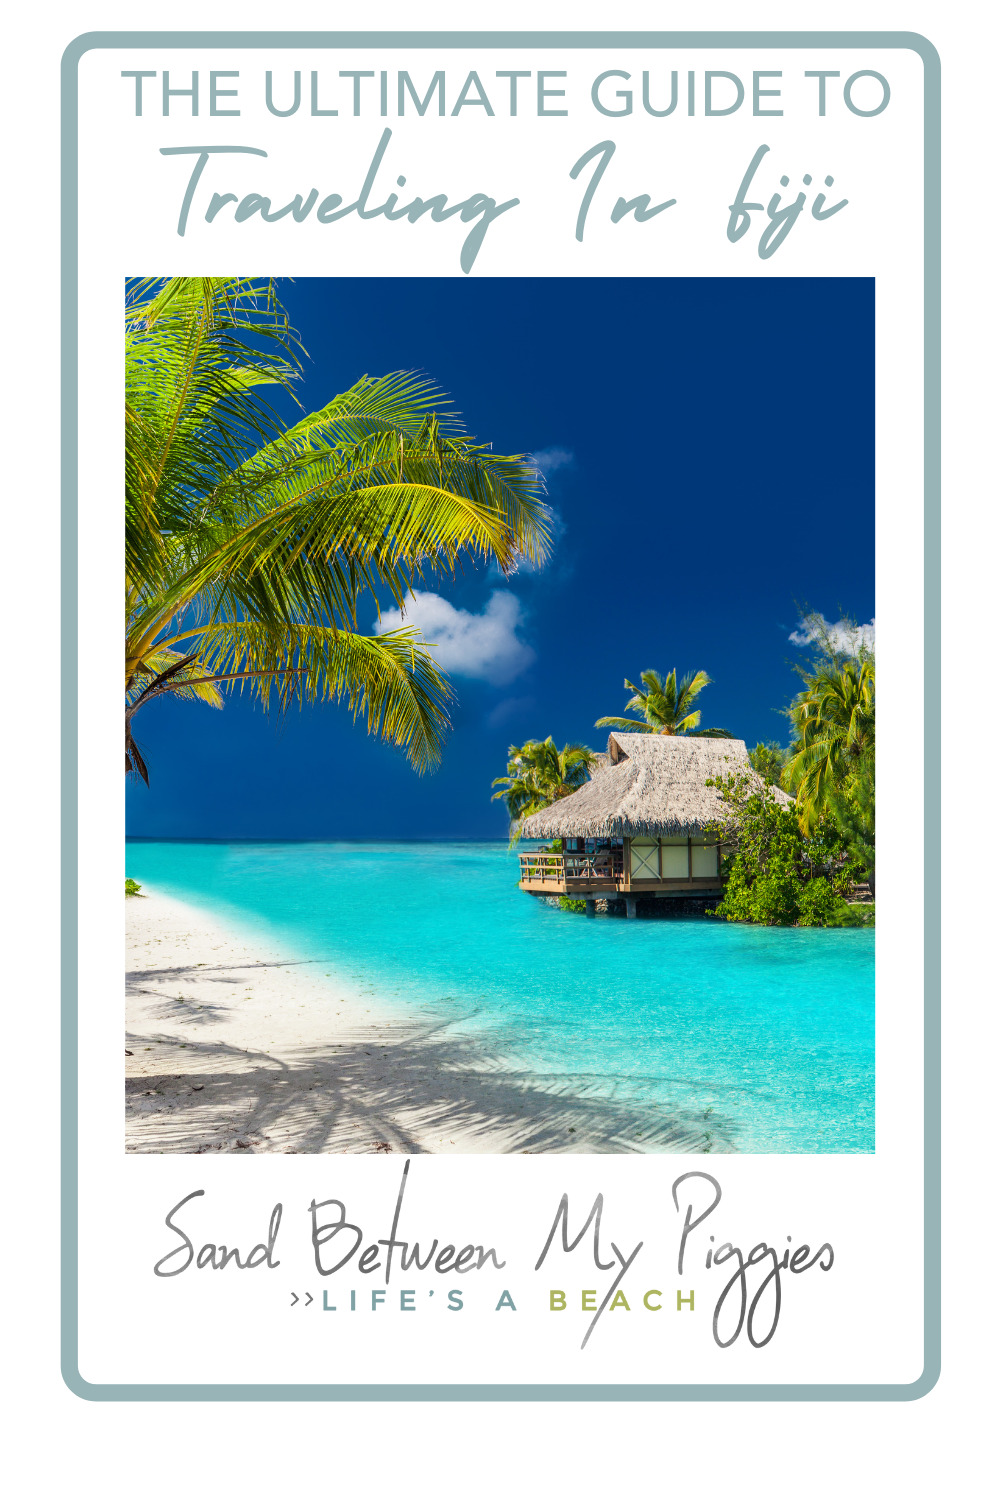 Sandbetweenmypiggies.com is all about the good life. Take a deep breath with travel and beach inspired ideas. Take a relaxing trip to beautiful Fiji. Find out all of the things you need to see and do!